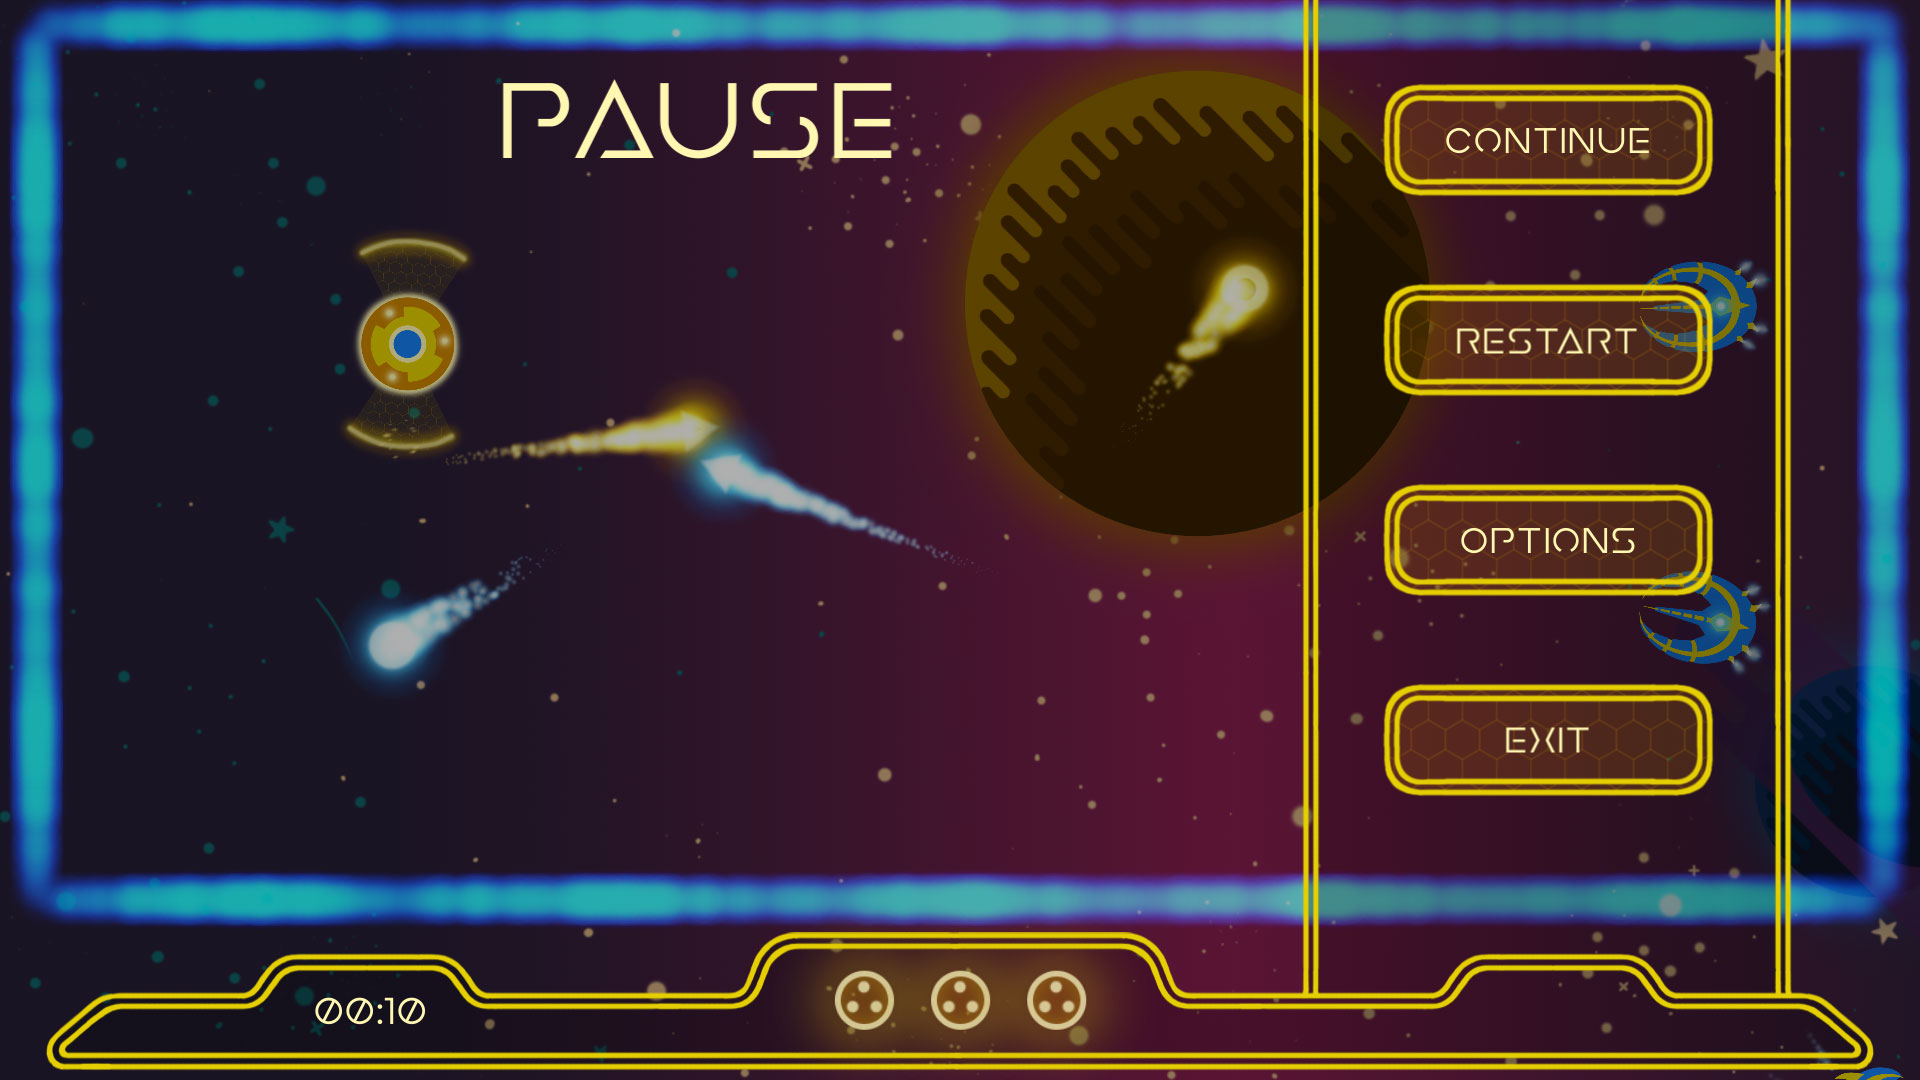 Screenshot of the pause menu